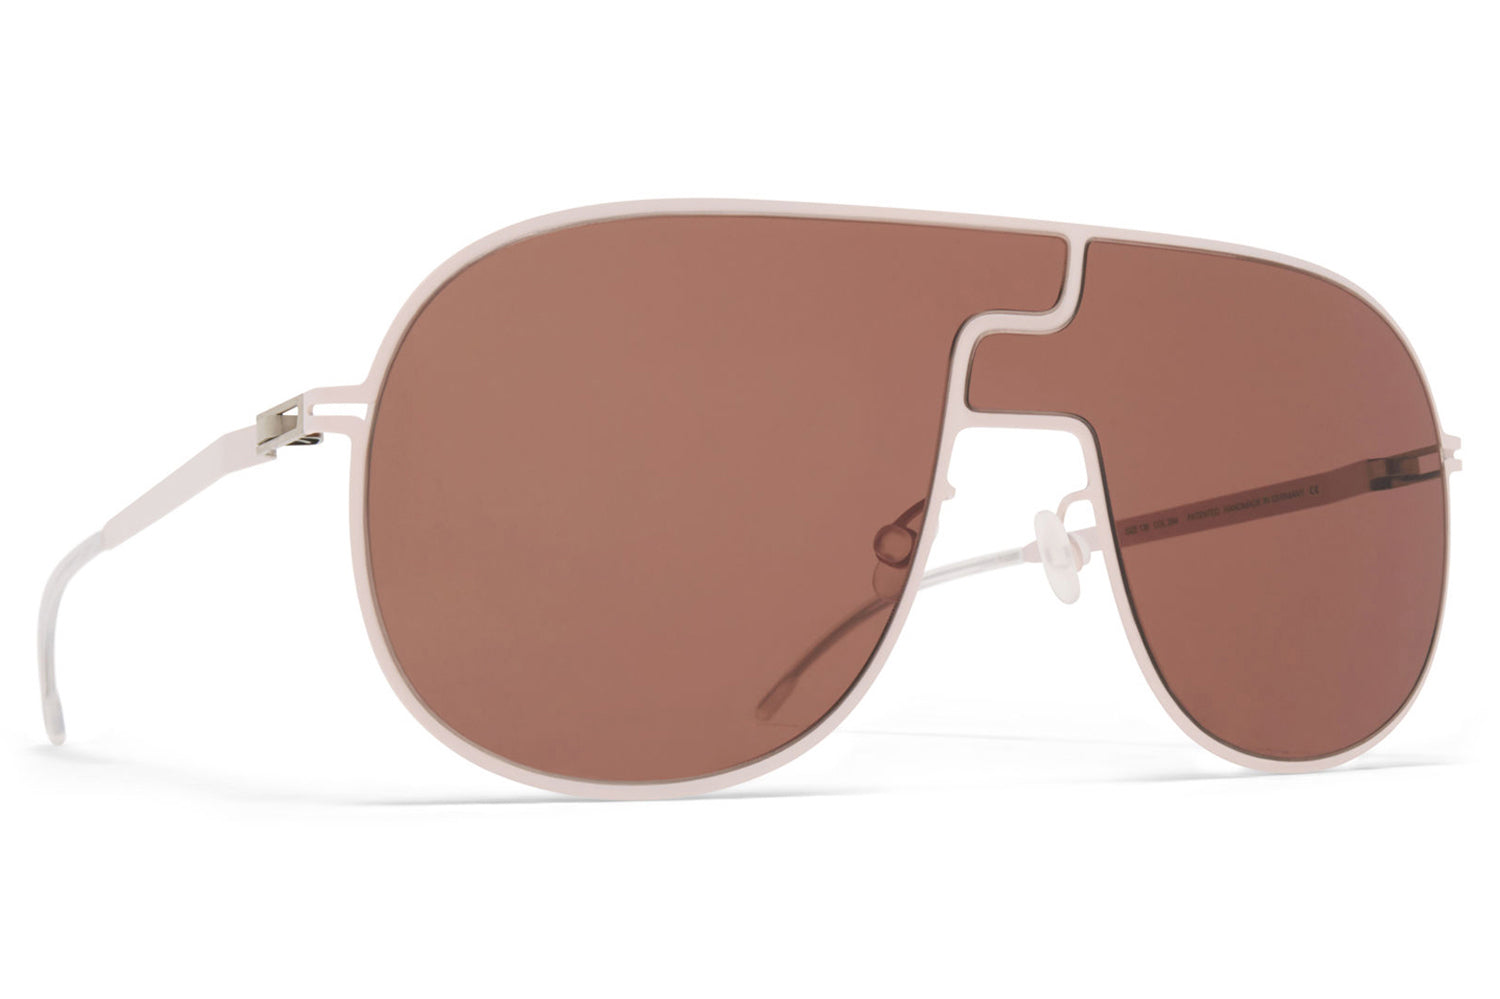 MYKITA - Studio 12.1 Sunglasses Aurore with Rose Wood Brown Lenses